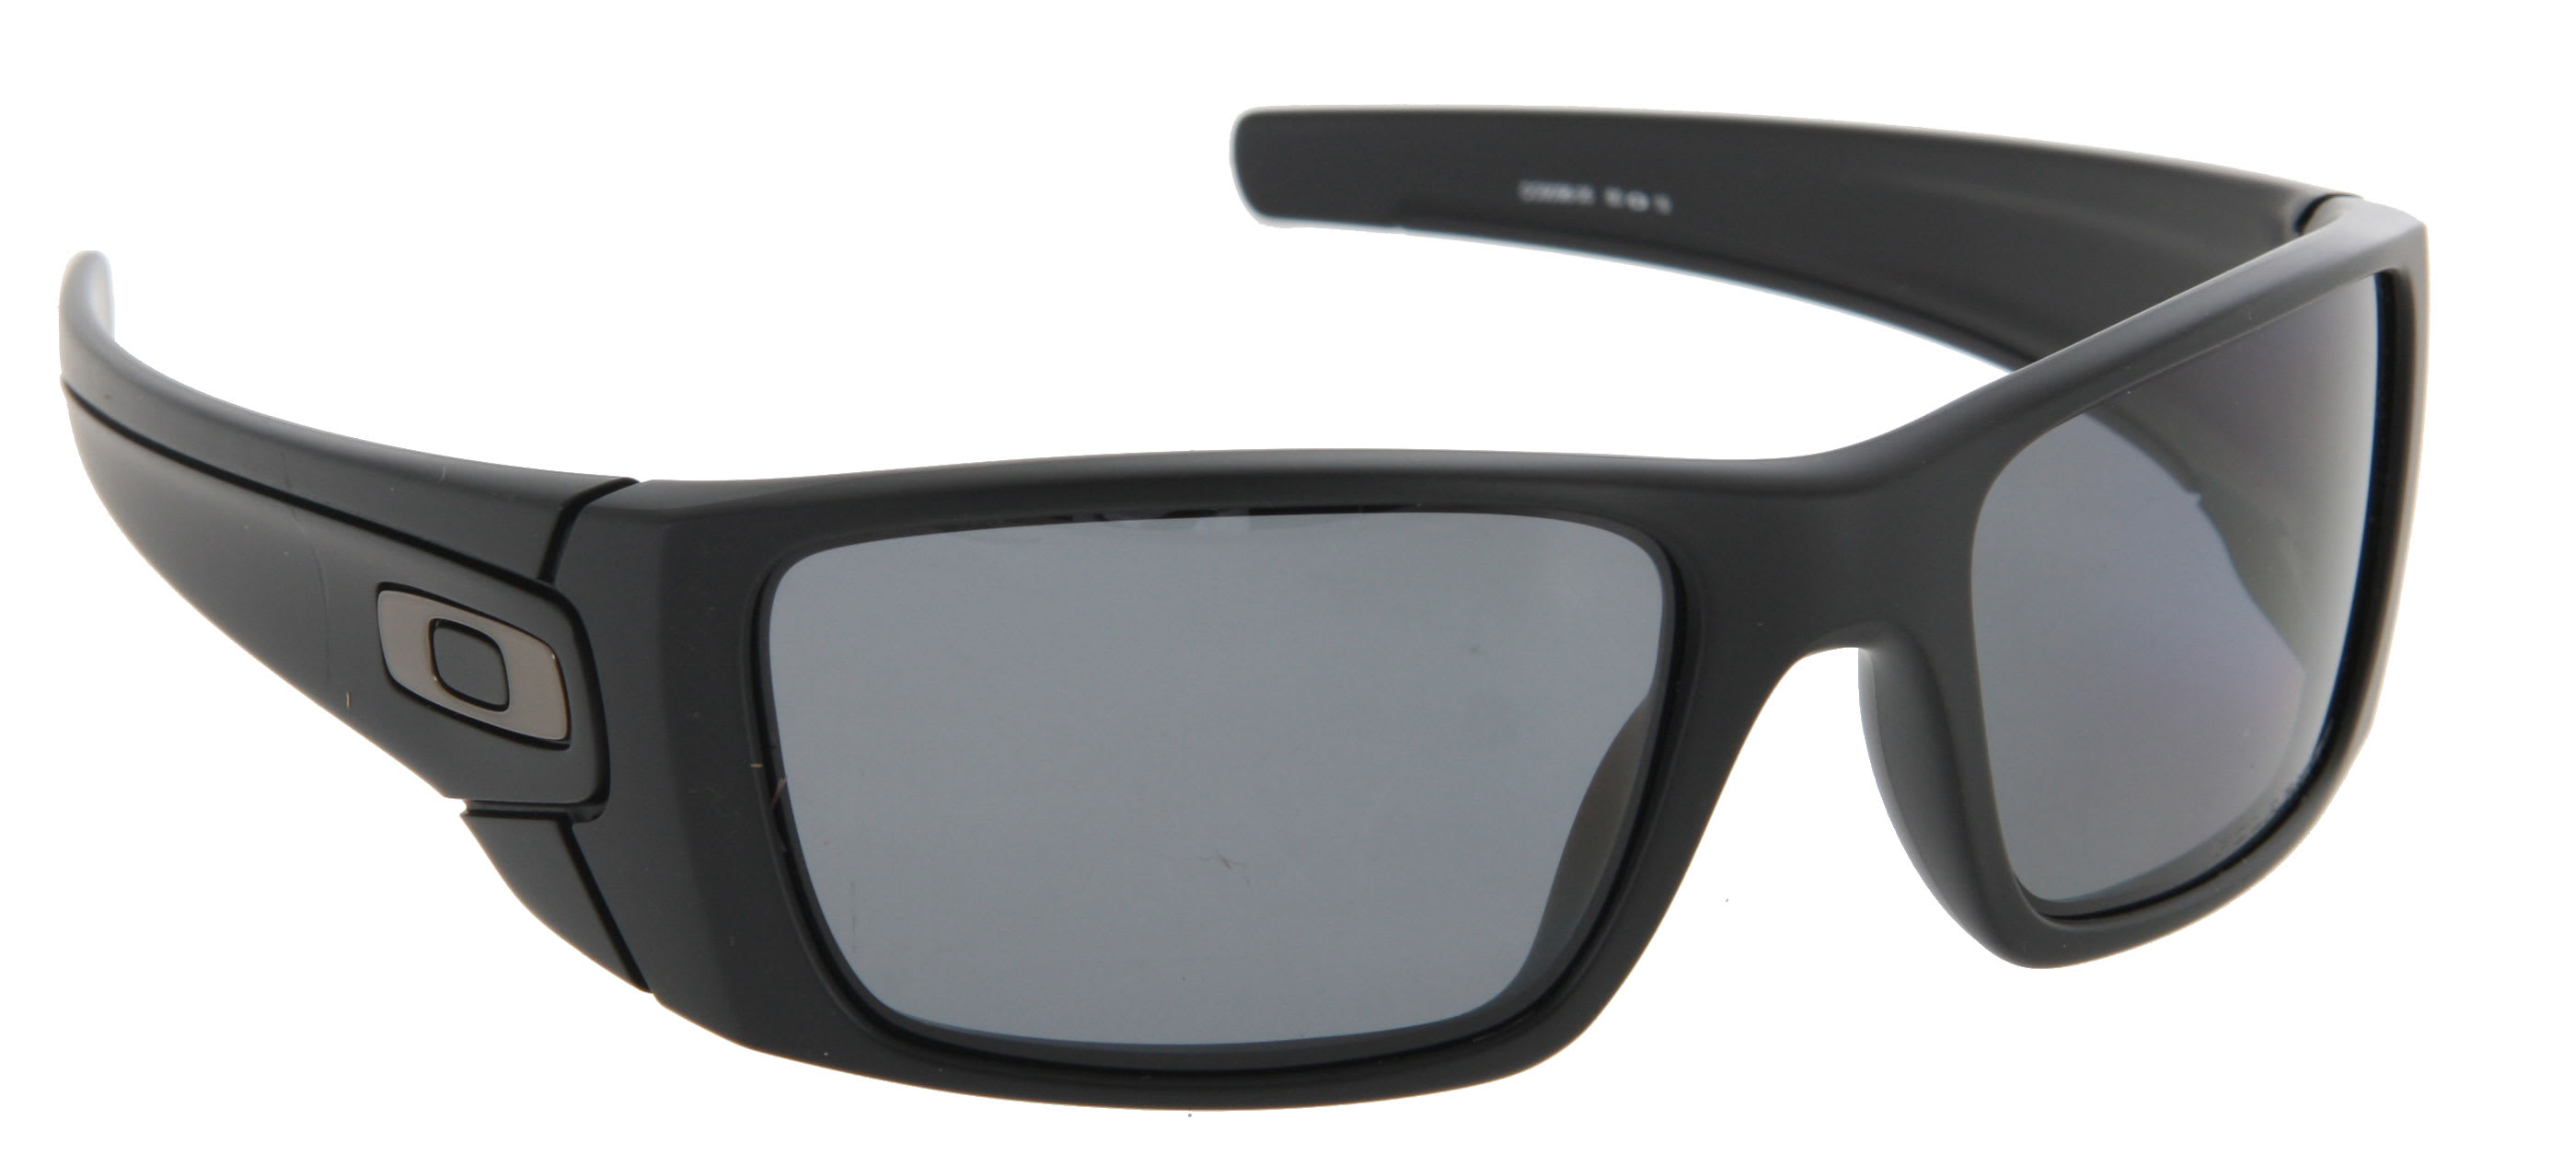 On sale oakley fuel cell sunglasses oakley fuel cell sunglasses thumbnail 1 nvjuhfo Images